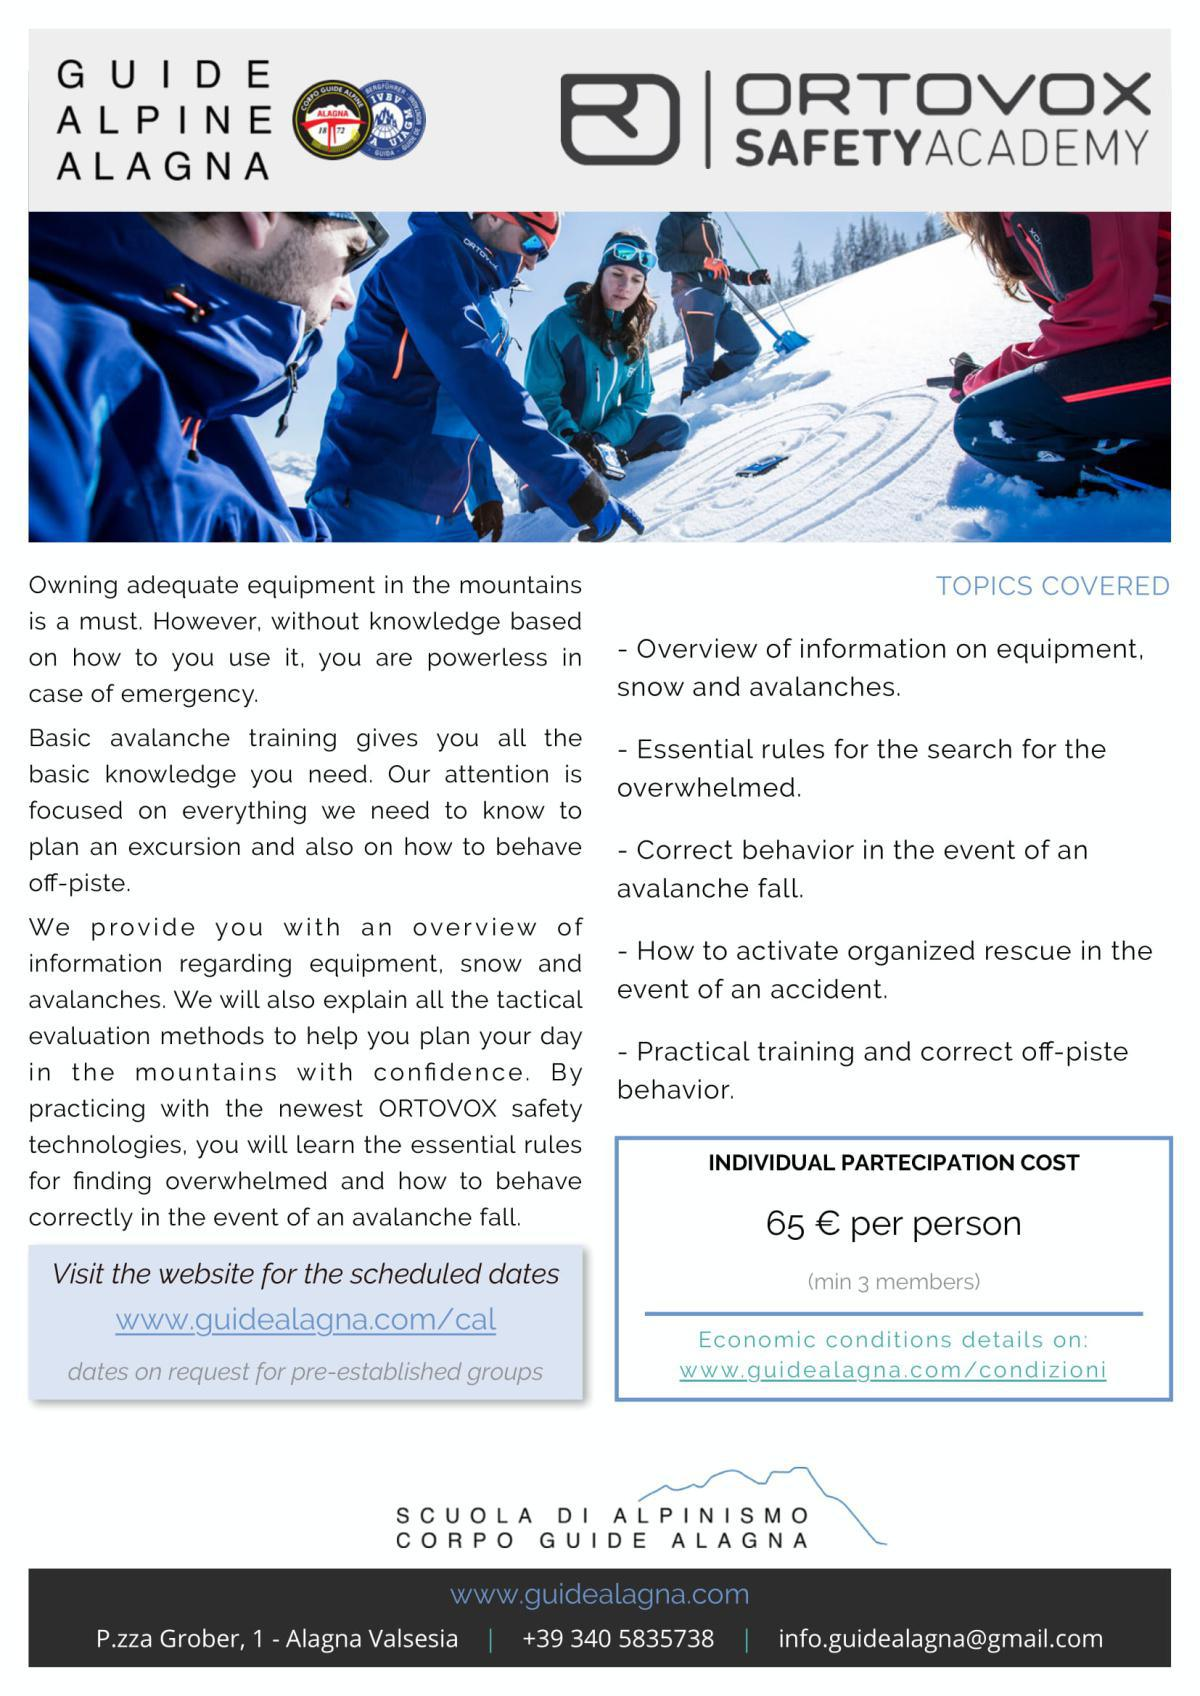 Mountaineering school Guide Group Alagna